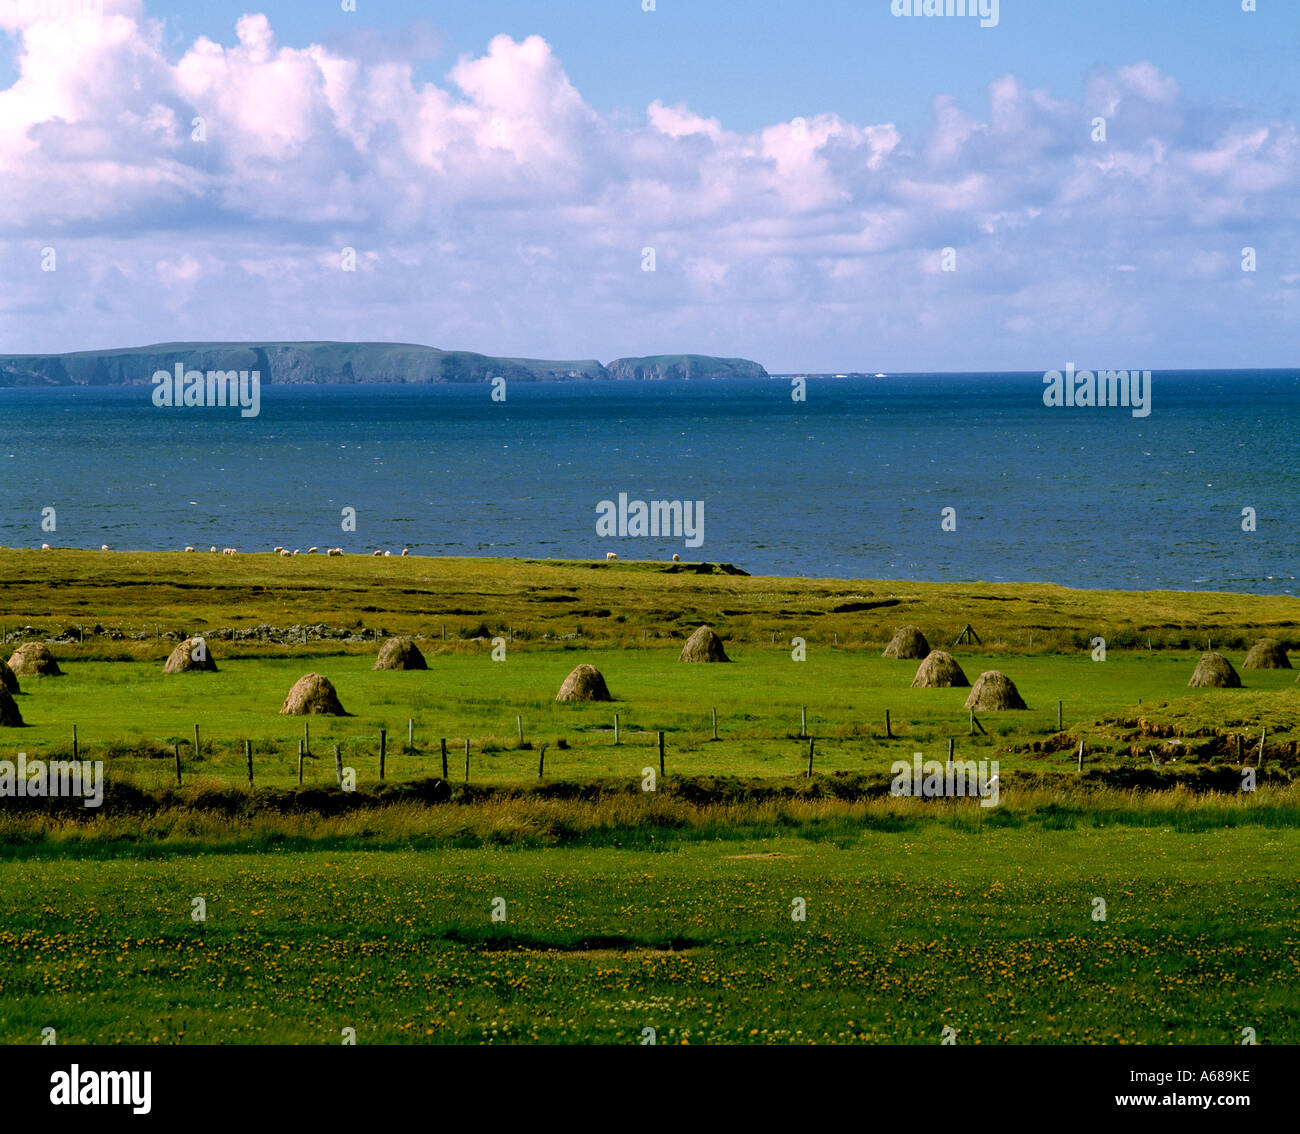 ireland, county mayo, hay standing in a field on the wild atlantic way, beauty in nature, - Stock Image